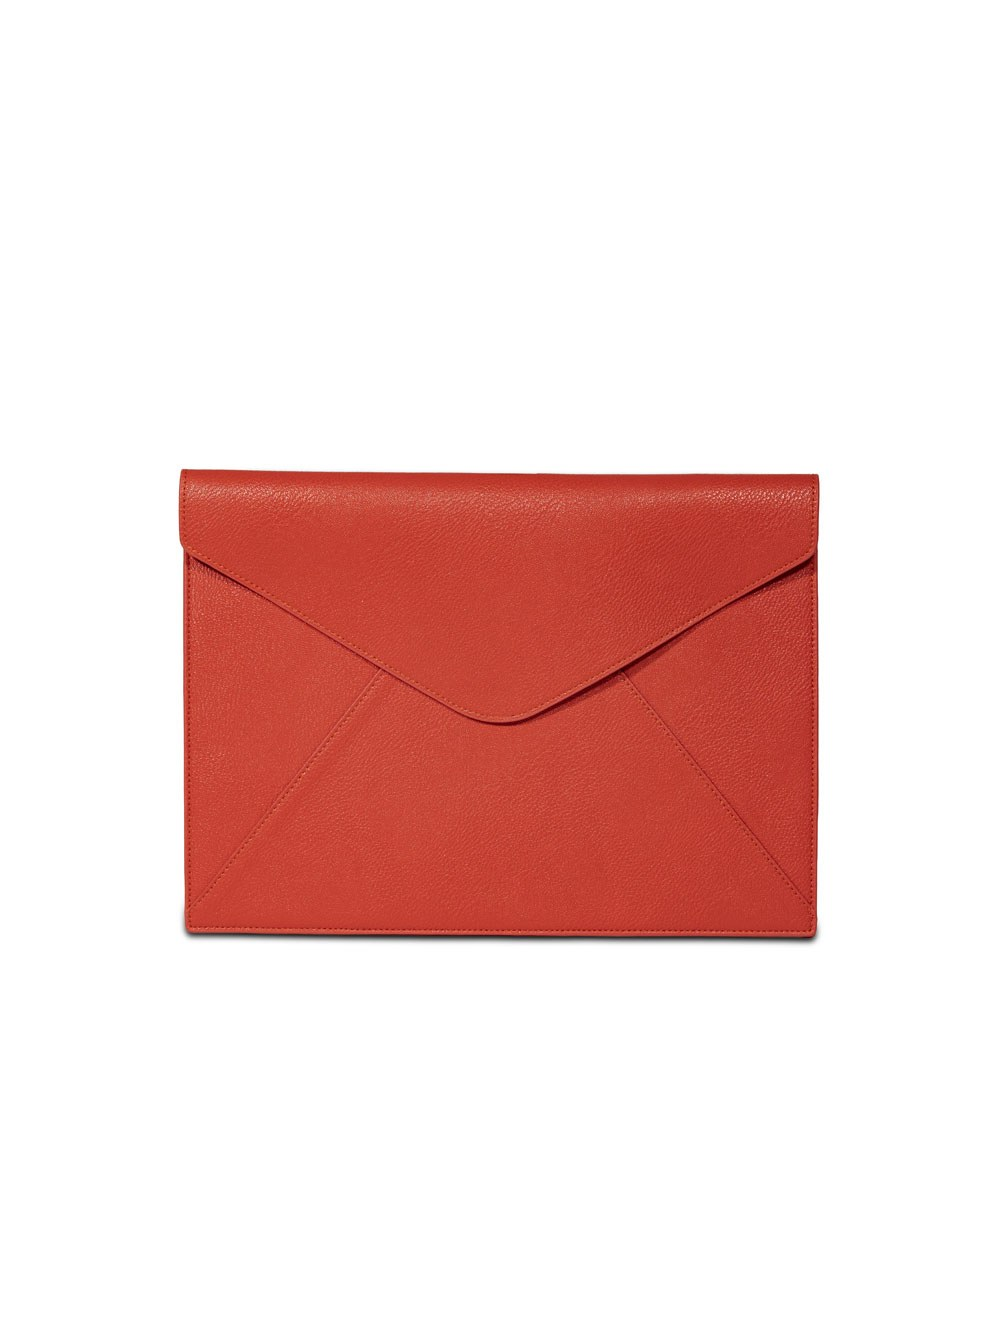 Document Holder Envelope A4 Fedor - Tangerine Tango